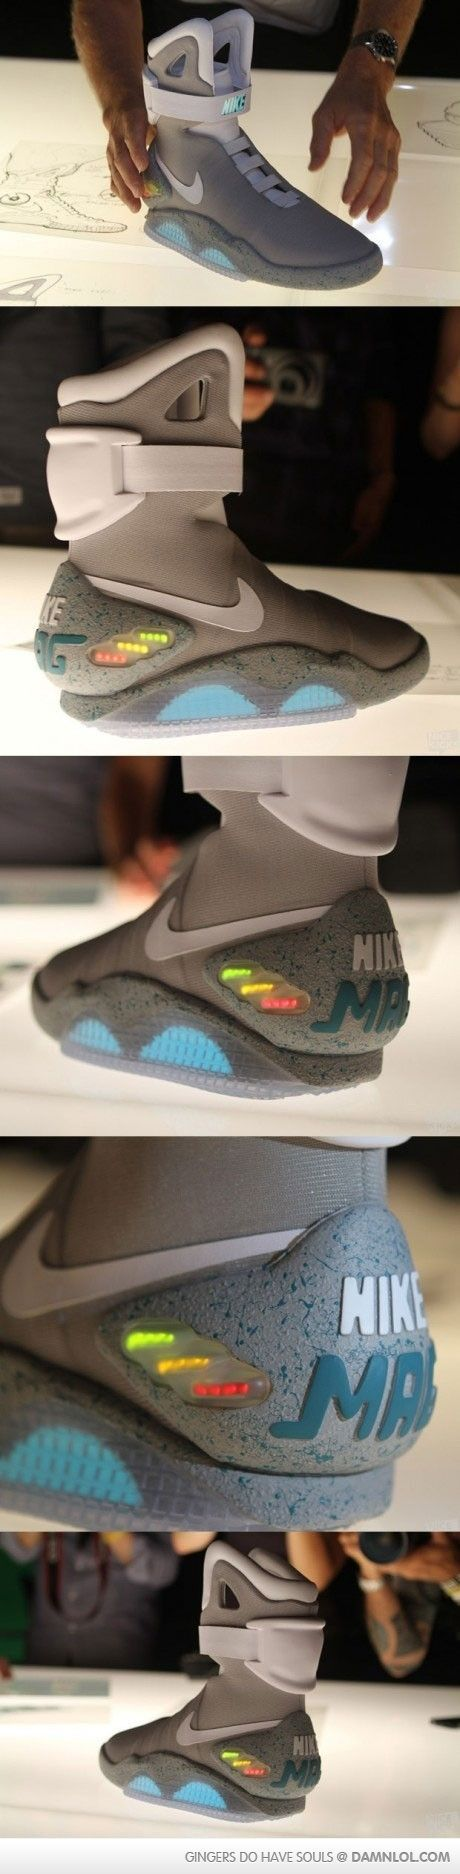 Nike x Air Mag x Back to the Future x Marty McFly Sneakers #sneakerswinter